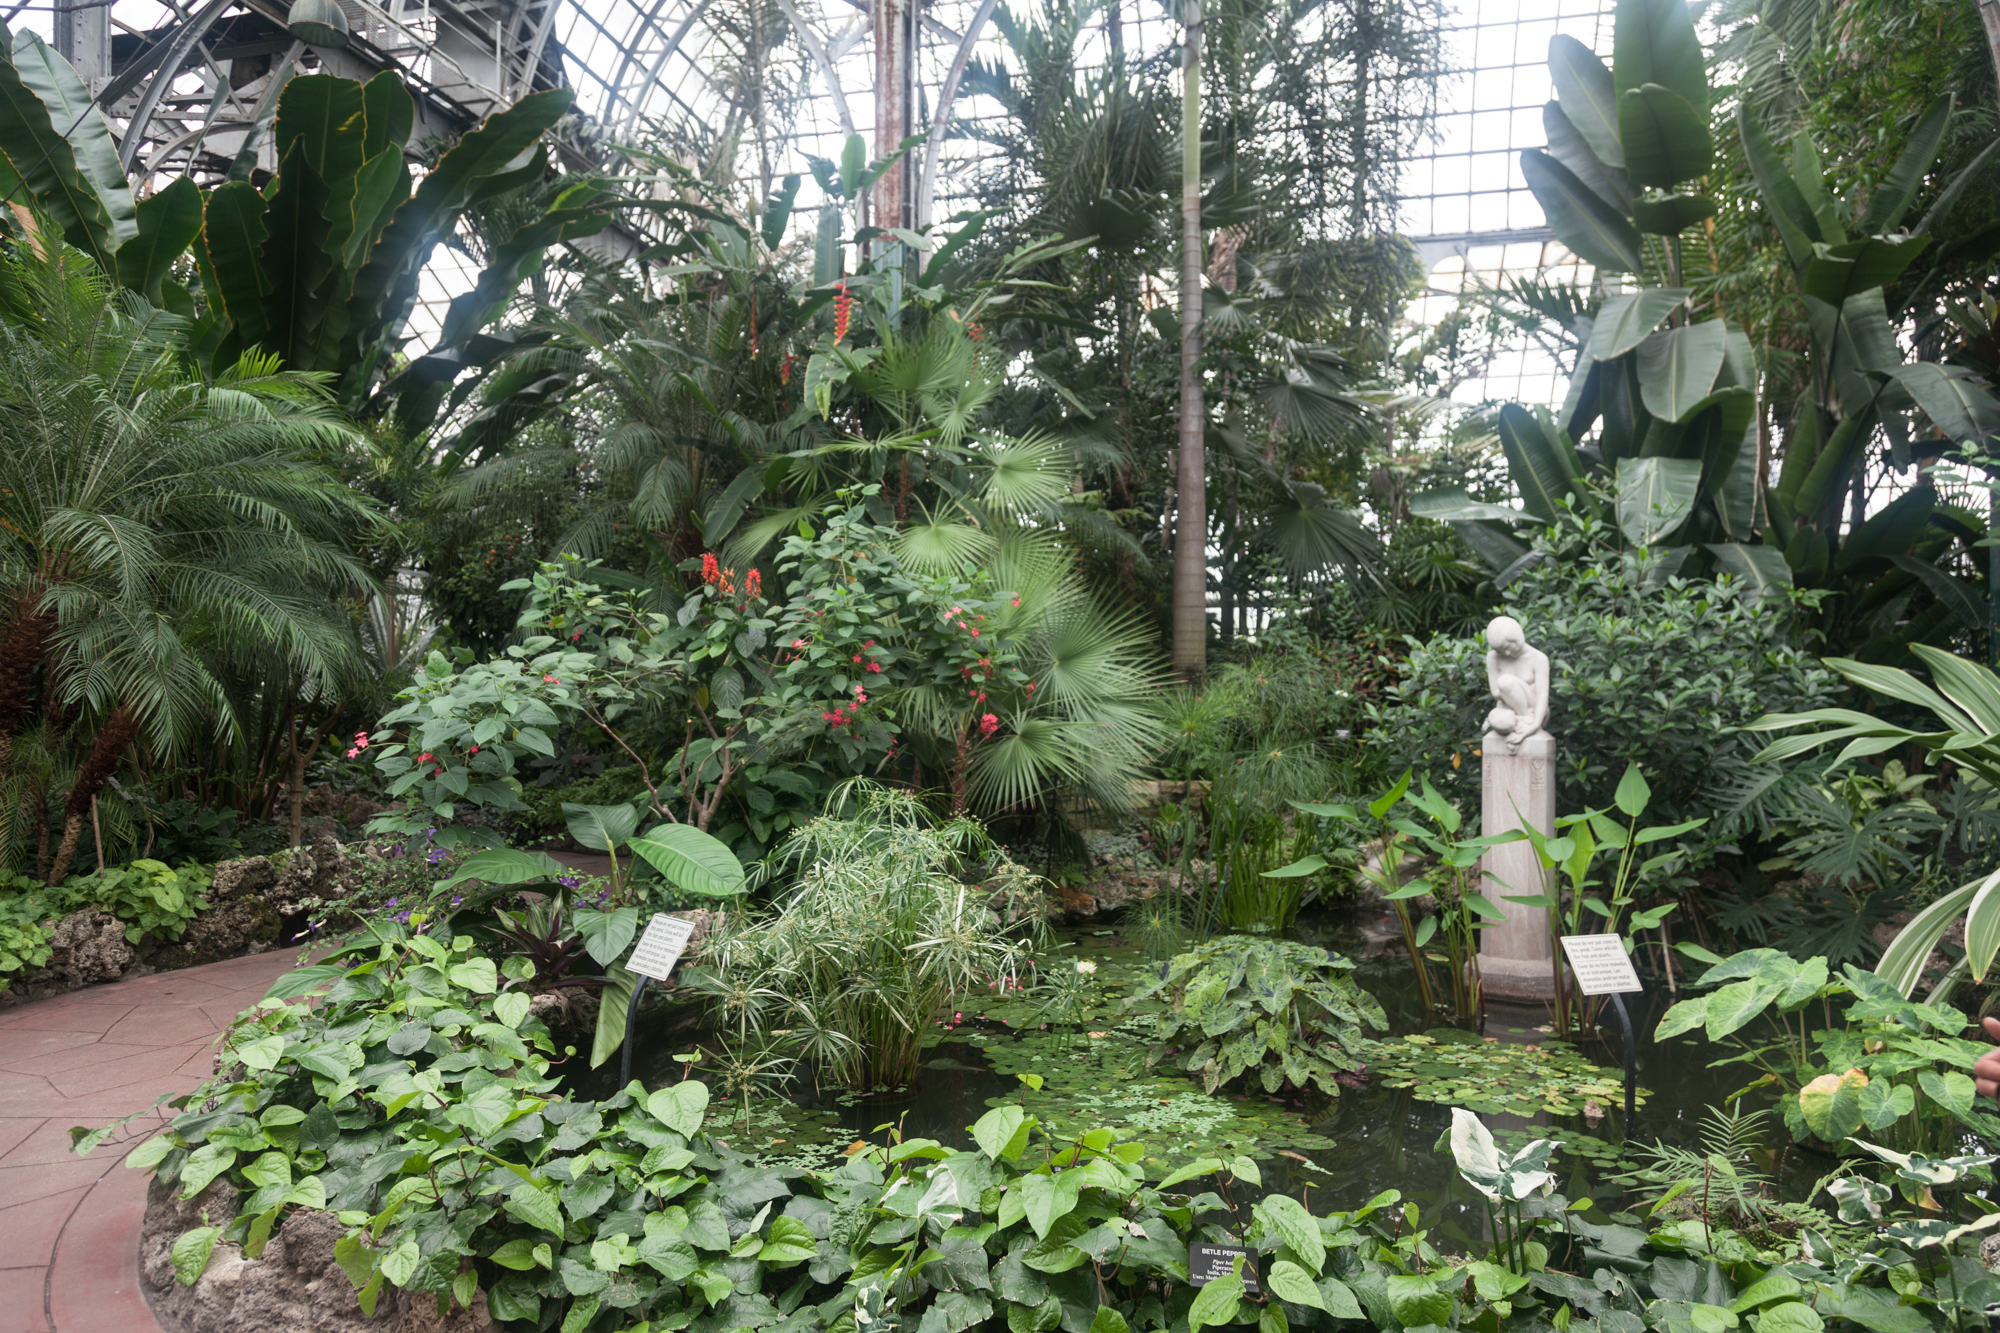 As you walk into the Conservatory, you're met with a pond, statue, and lush scenery.